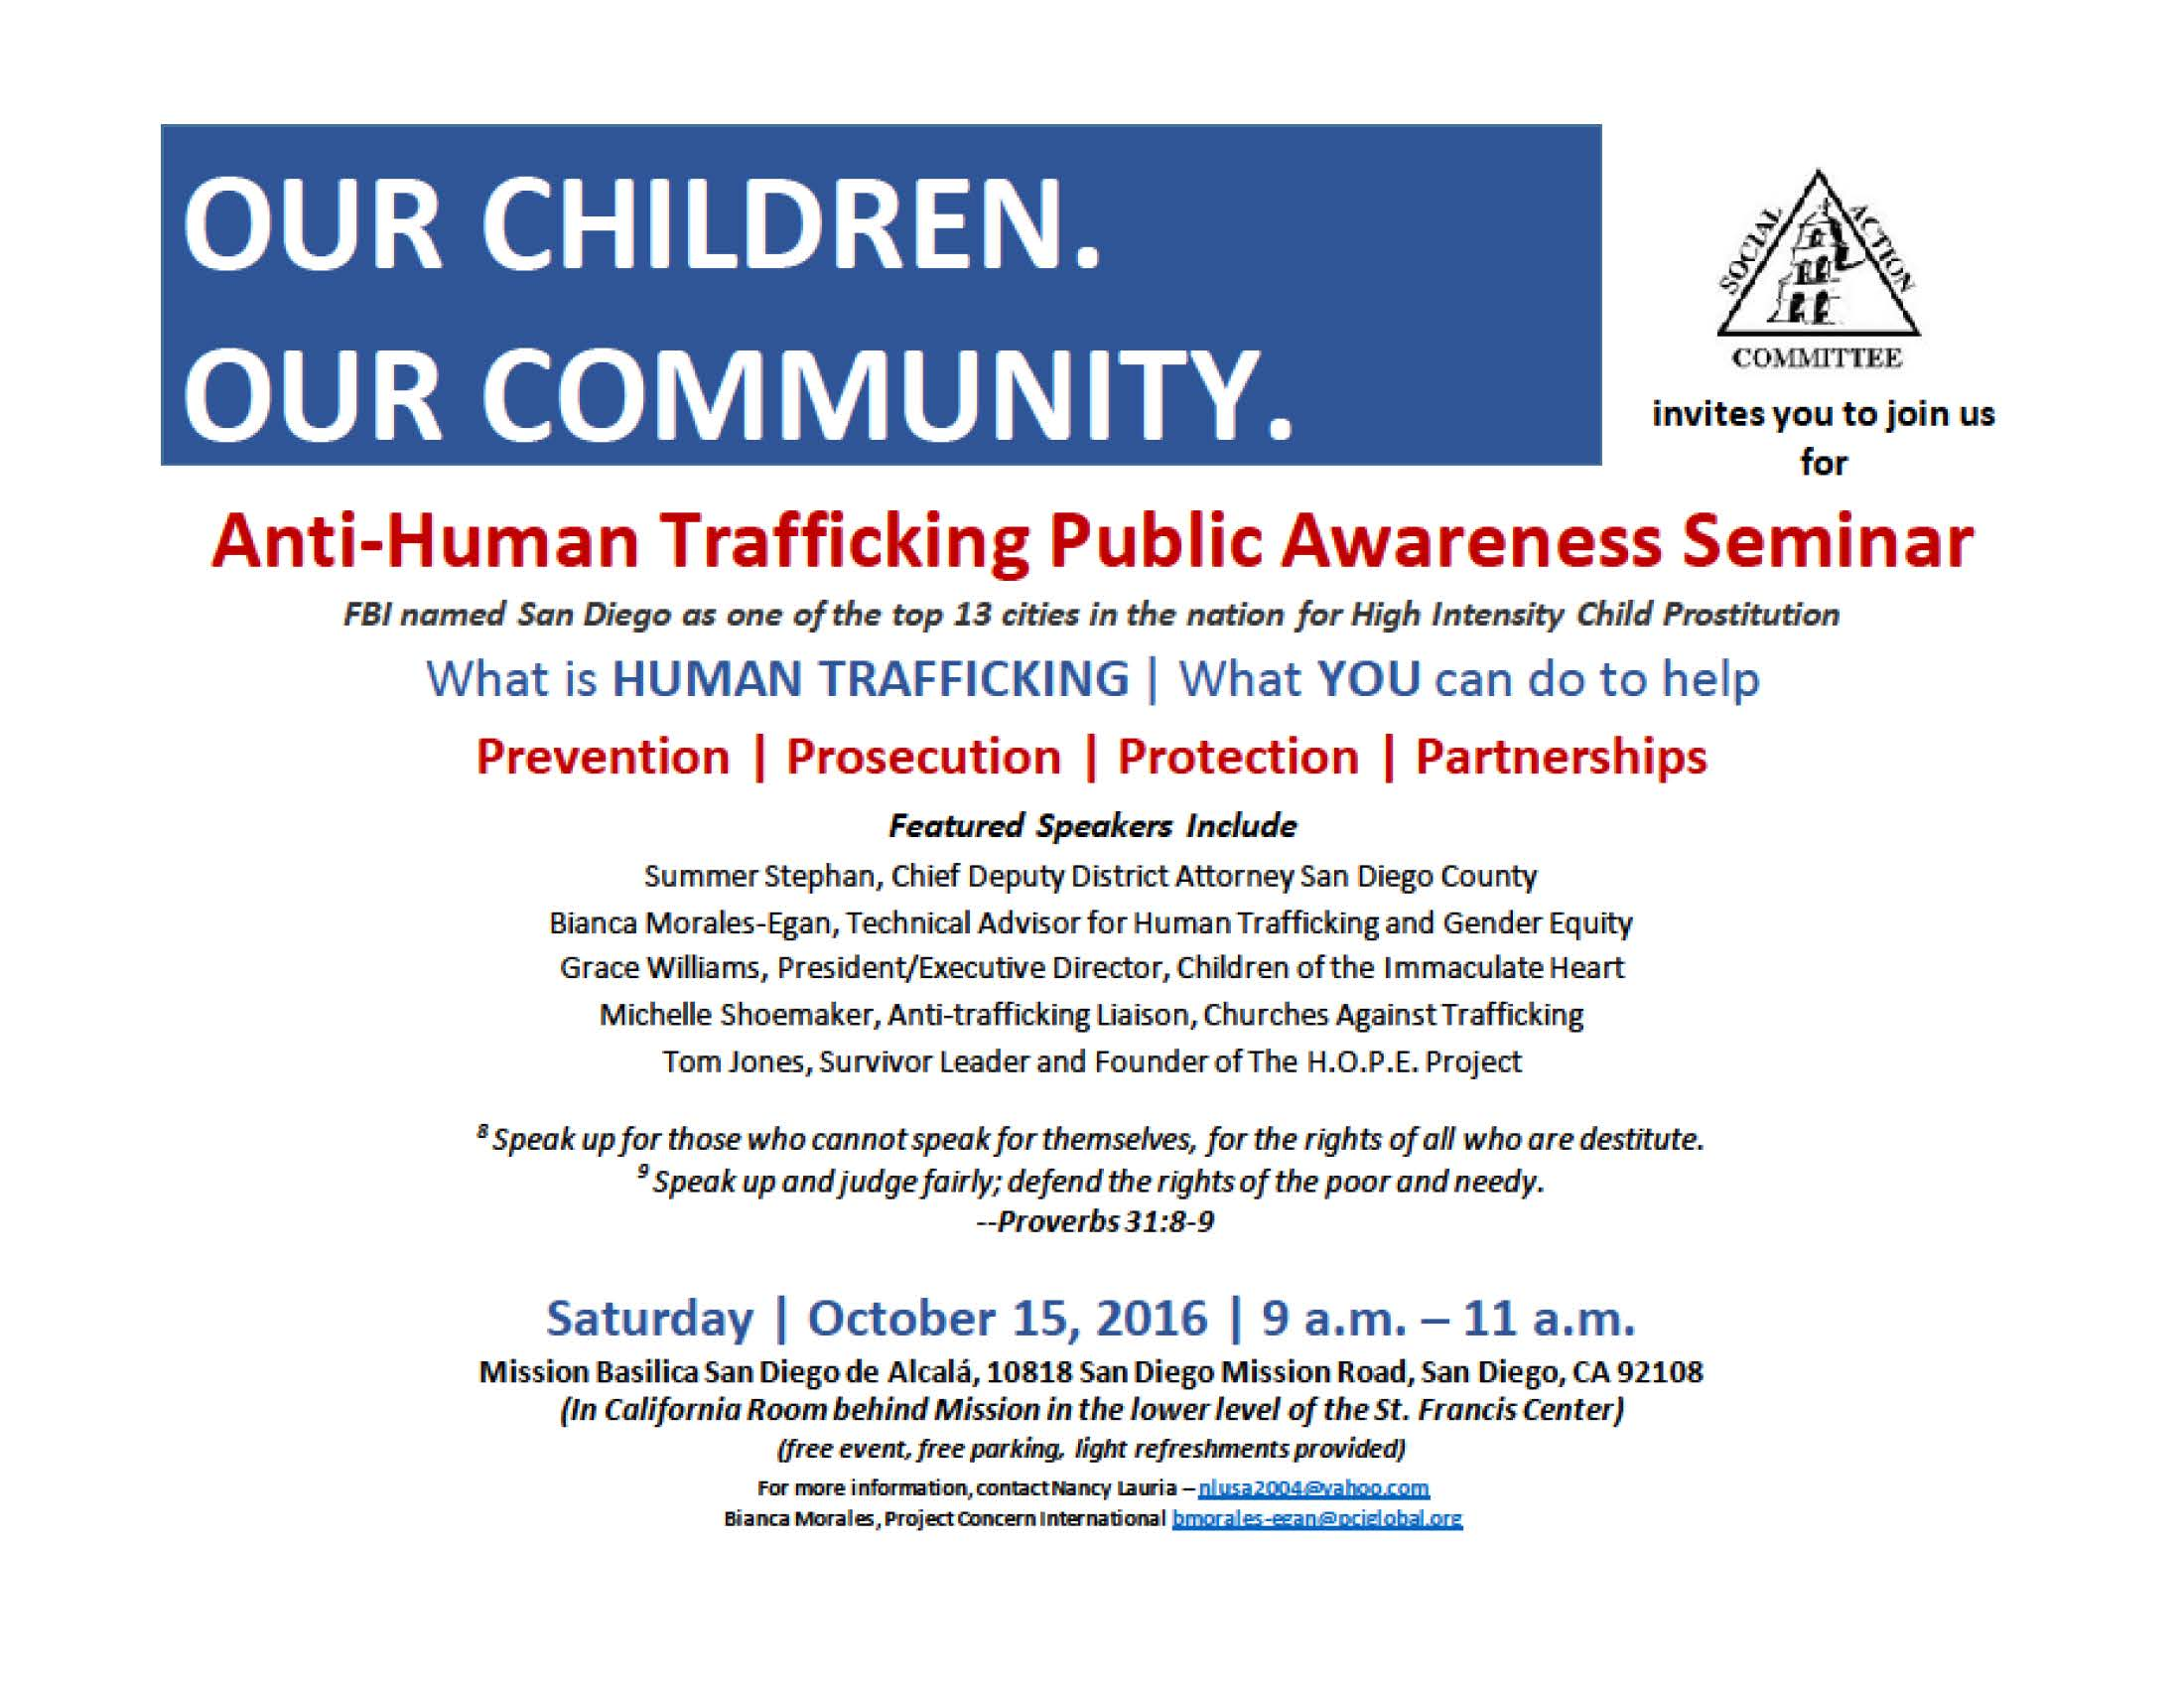 Anti-Human Trafficking Public Awareness Seminar